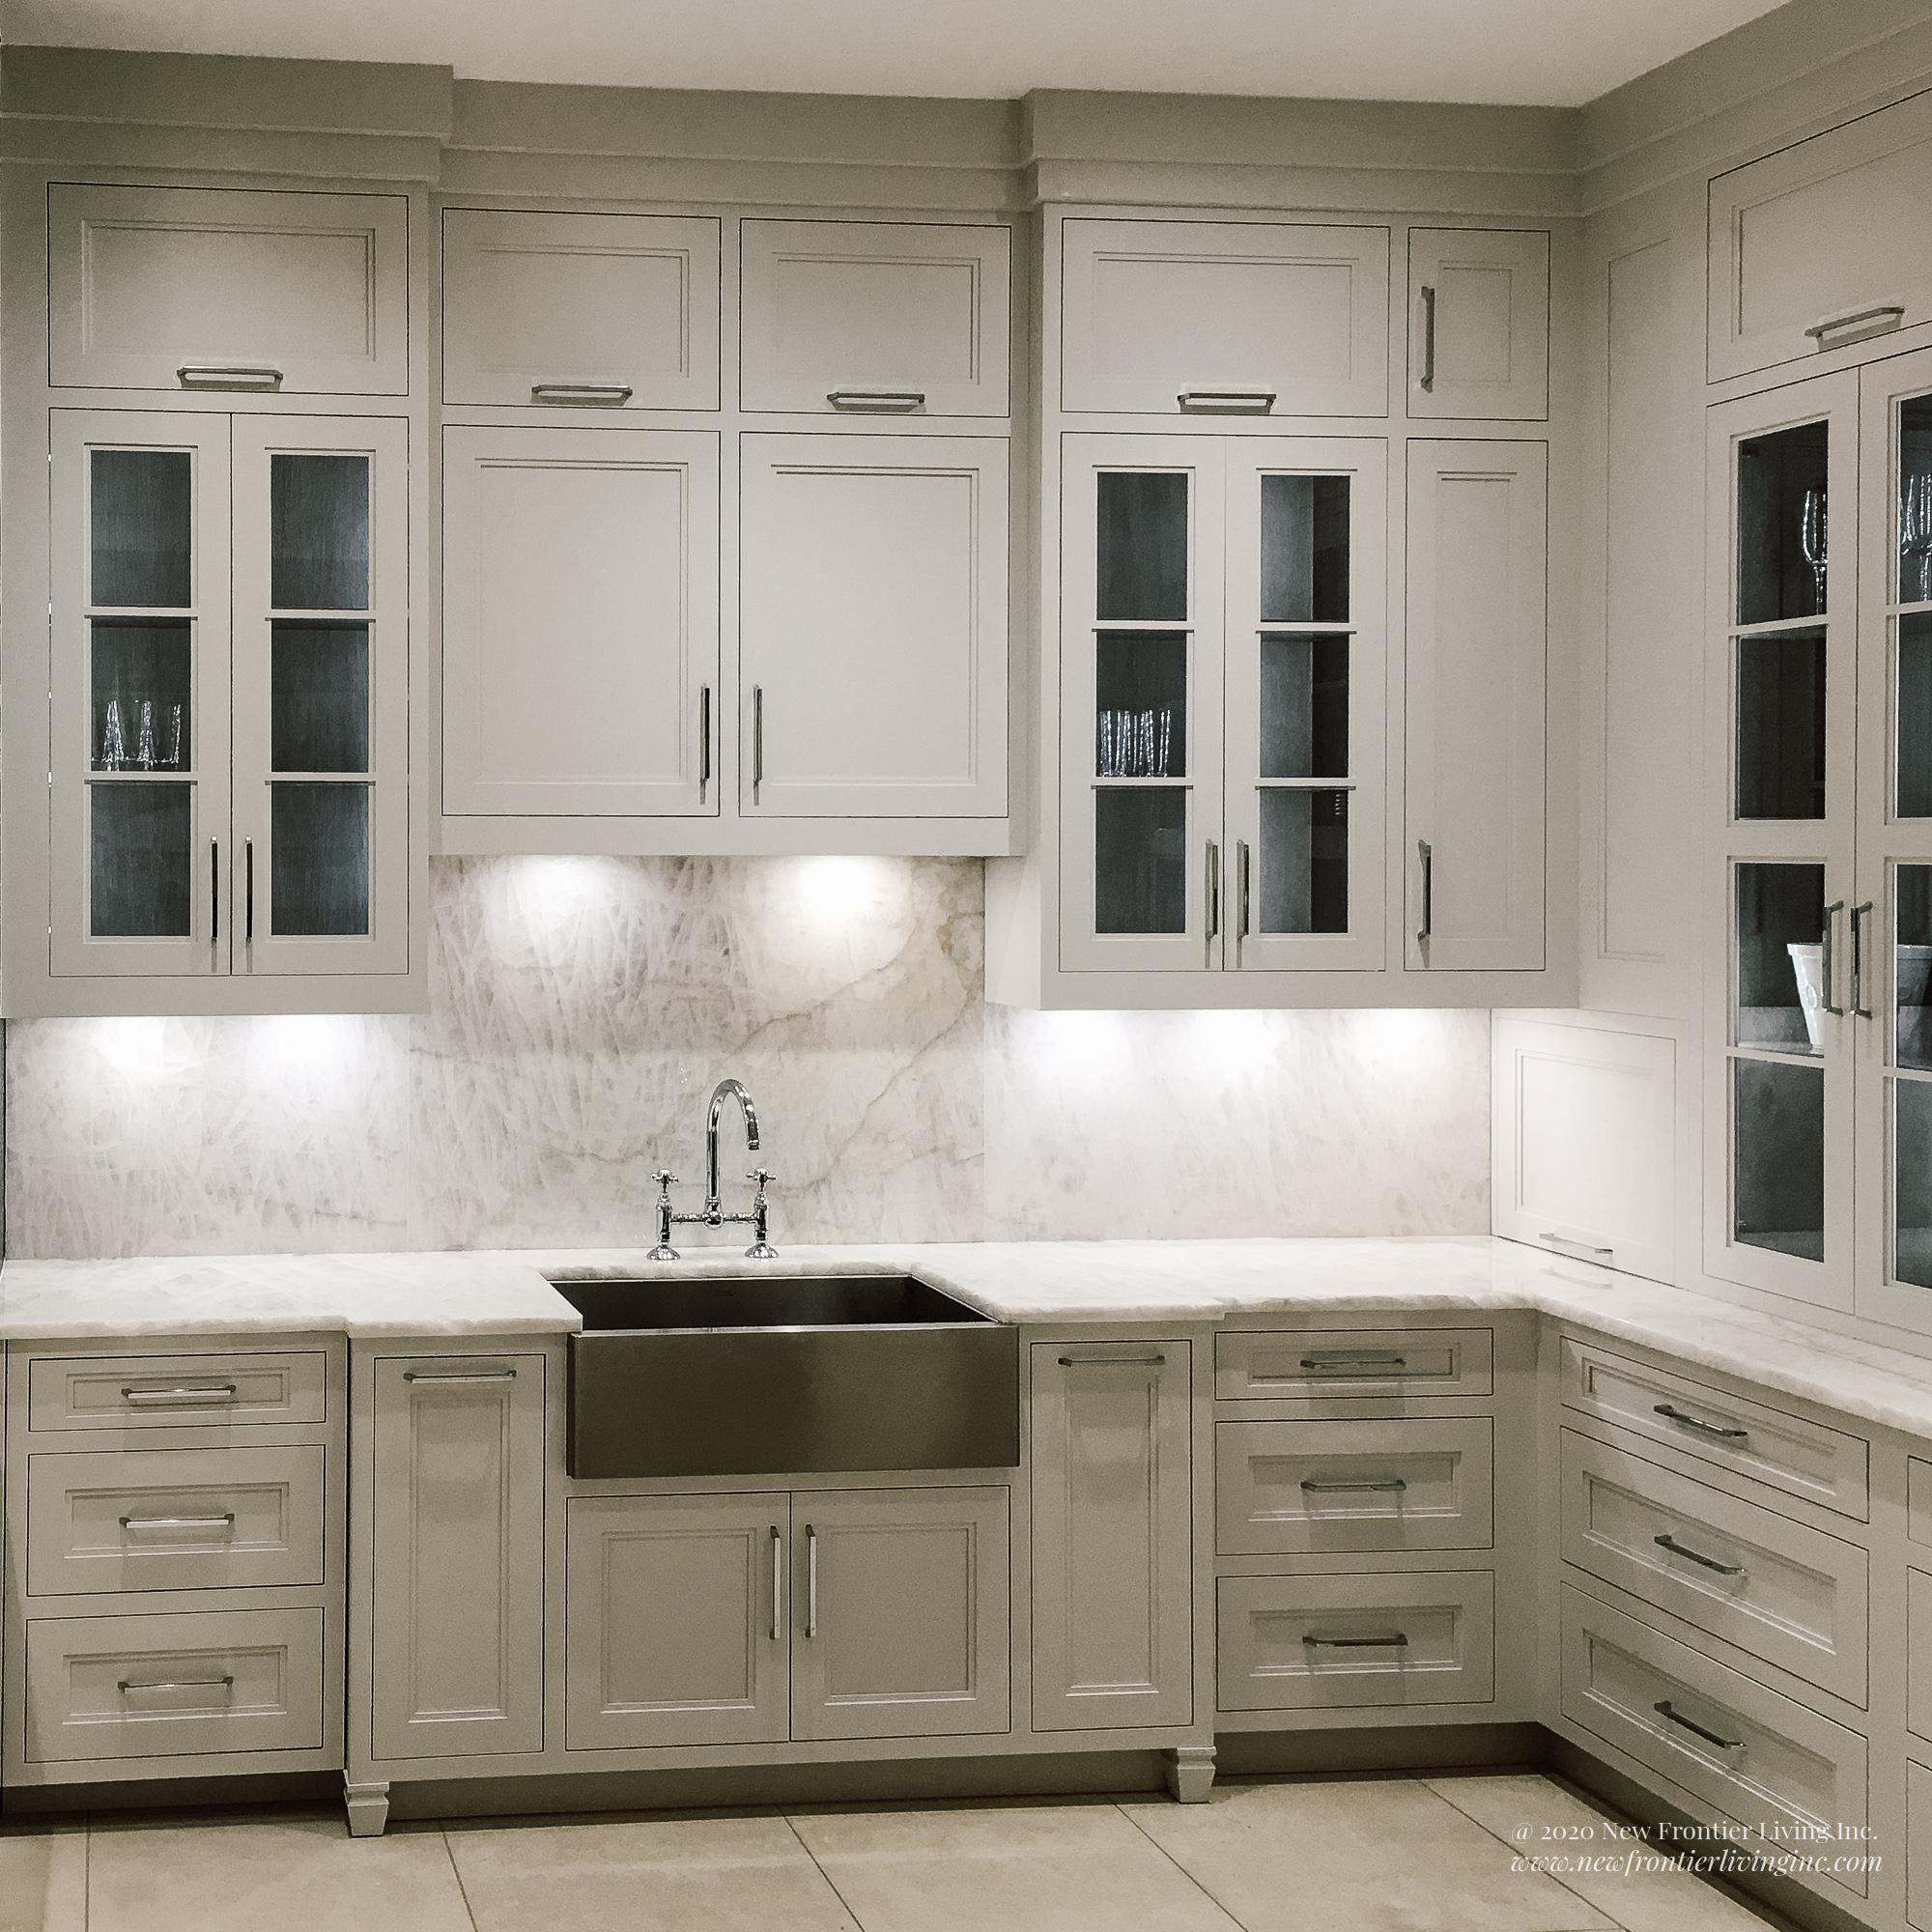 Traditional cream kitchen with silver handles and farmhouse sink and glass upper cabinetry